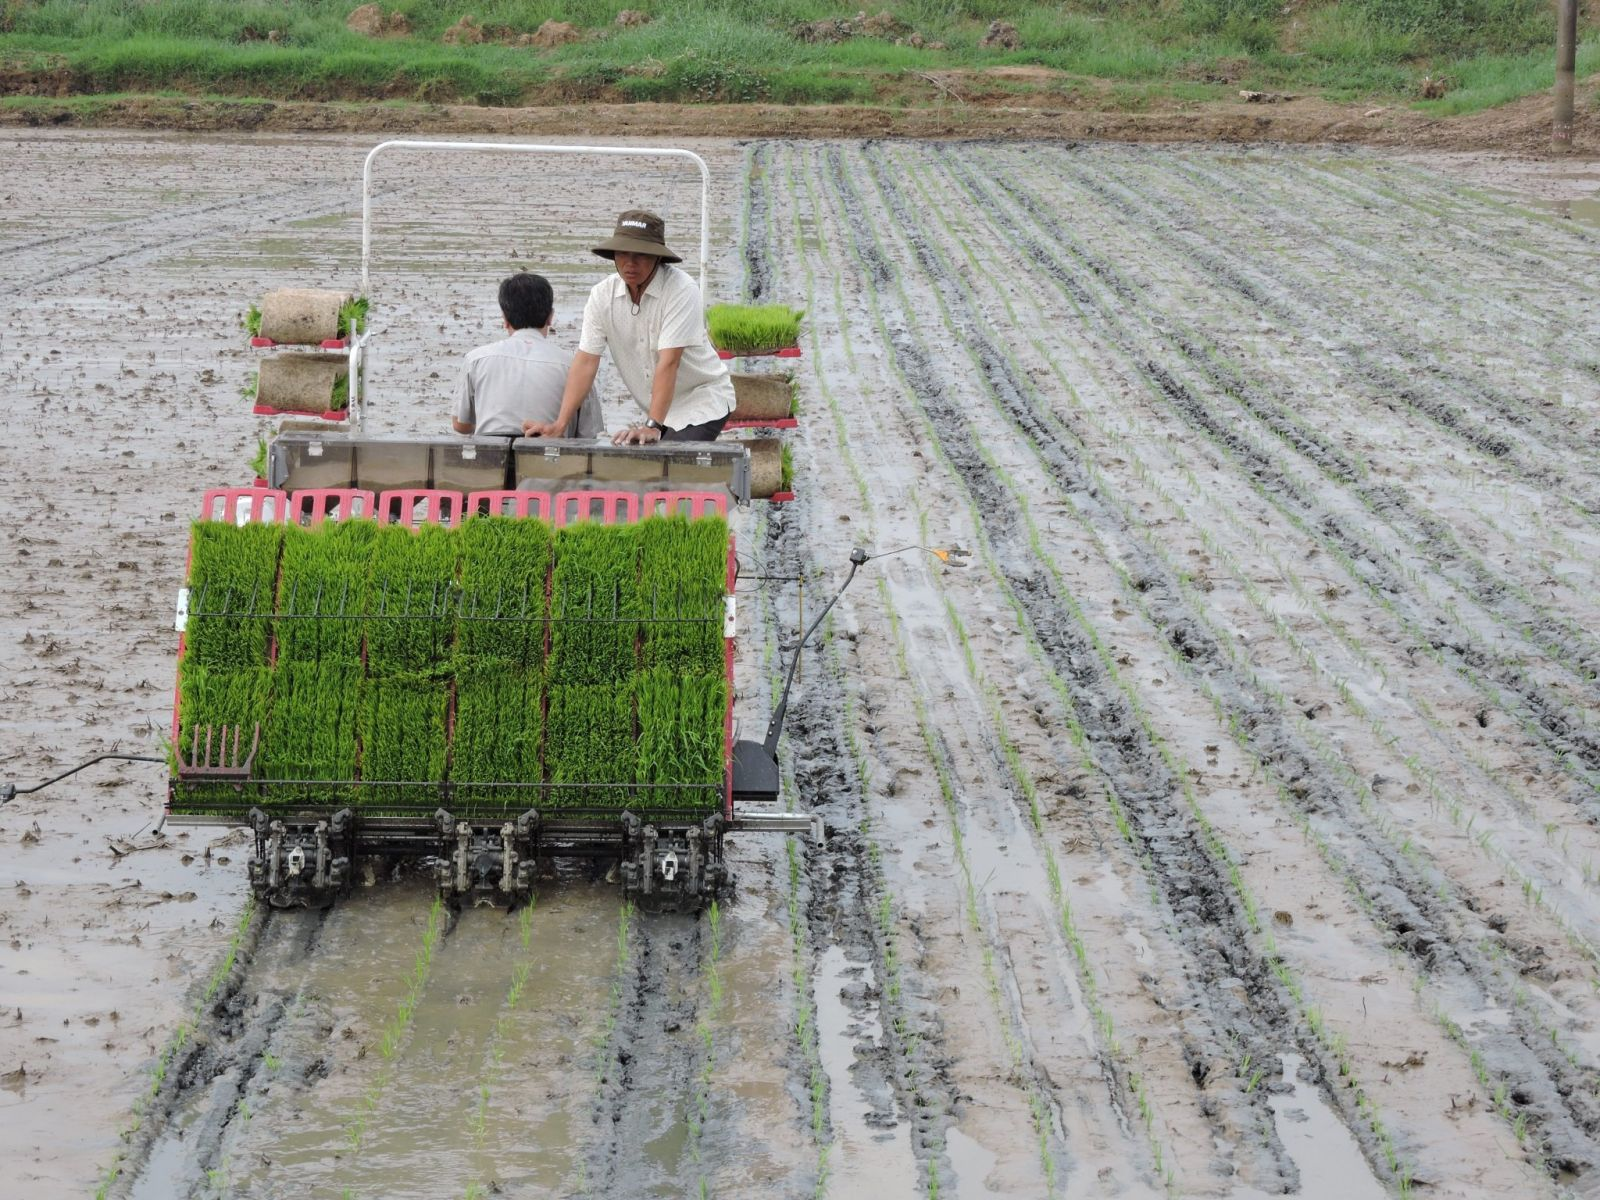 The application of high technology in agricultural production is strengthened. Photo: Song Tung